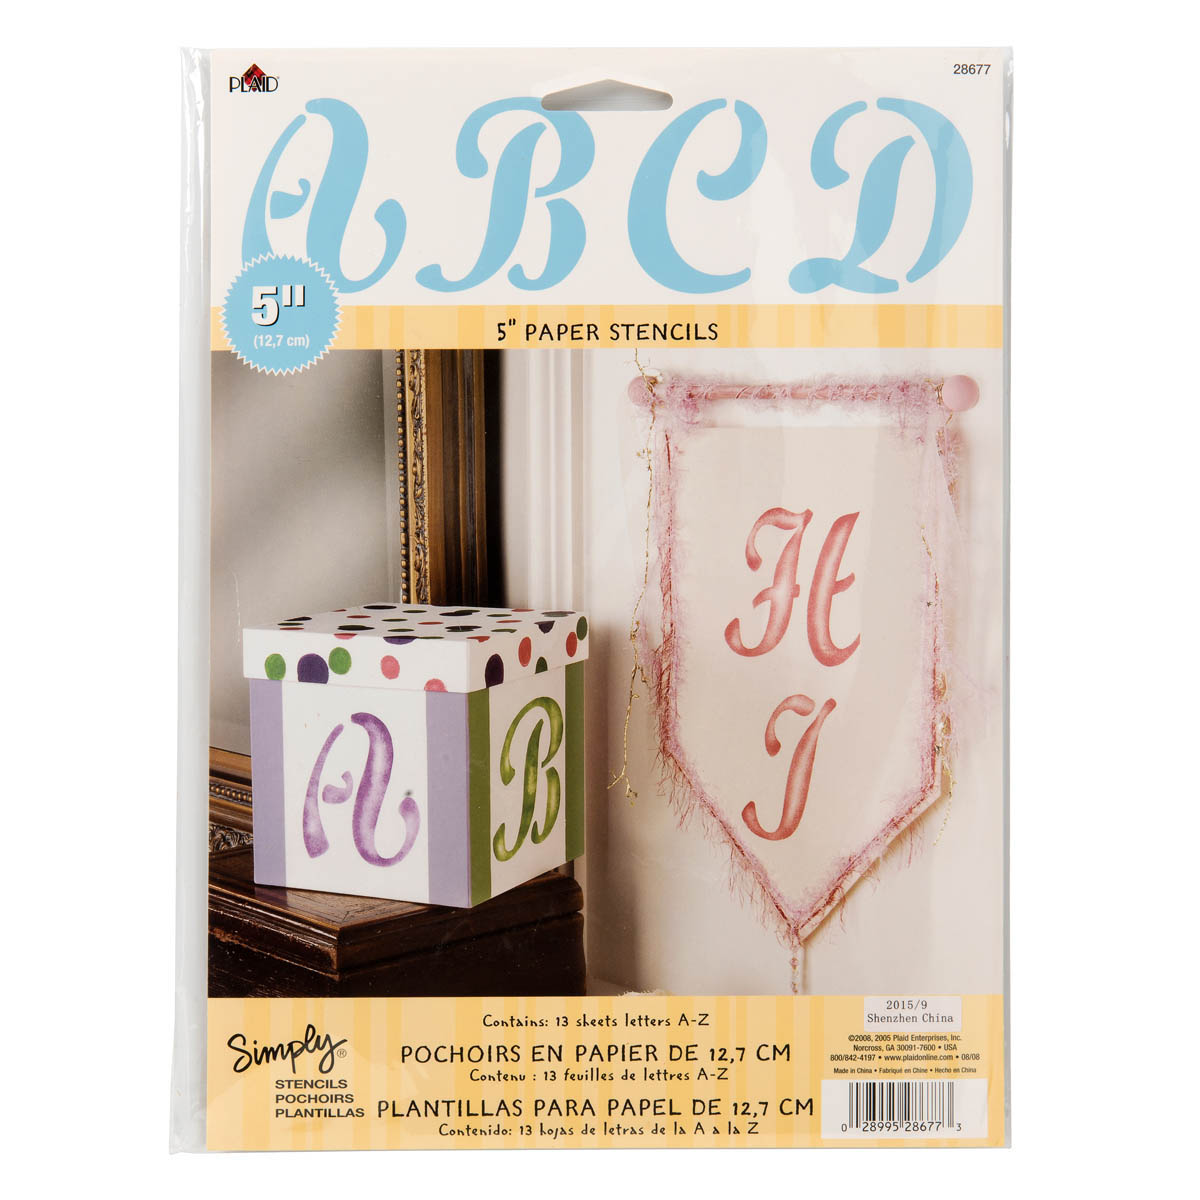 Simply ® Stencils - Value Packs - Alphabets - Cursive Upper Case